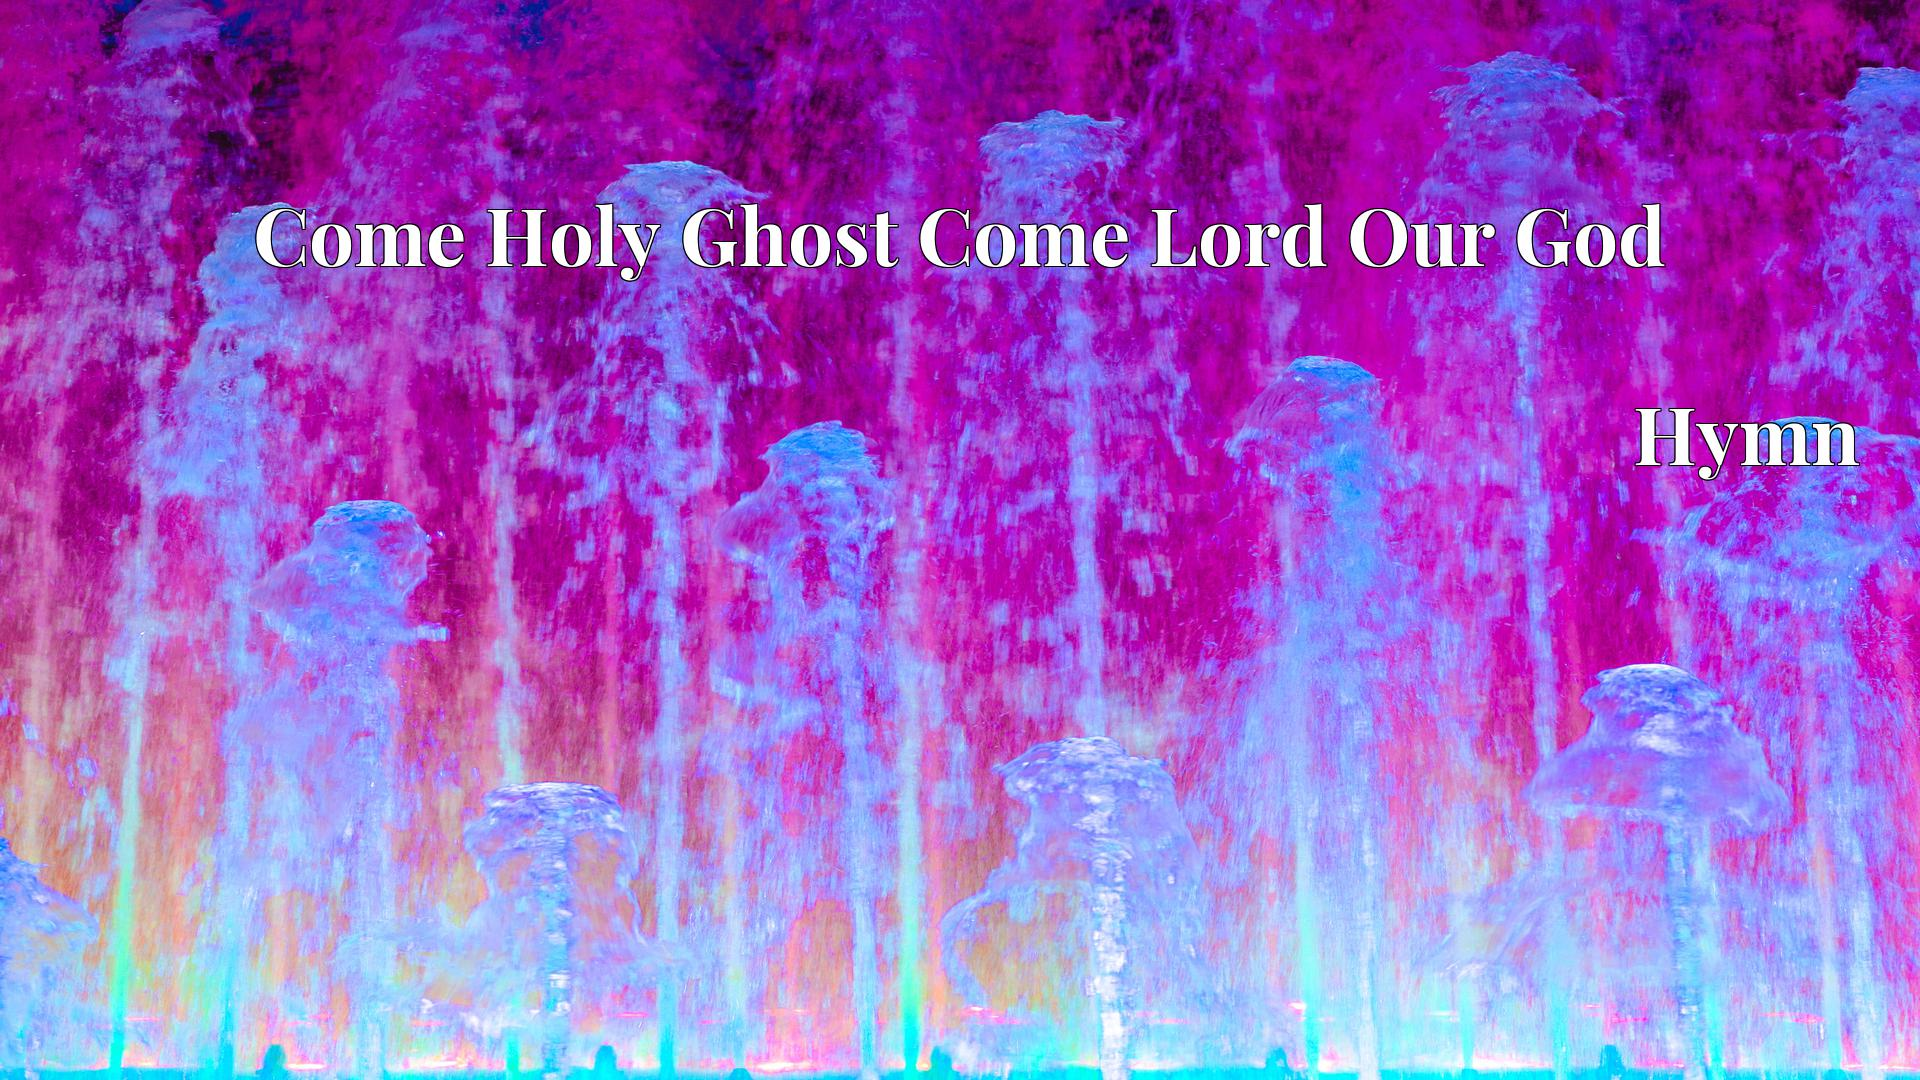 Come Holy Ghost Come Lord Our God - Hymn